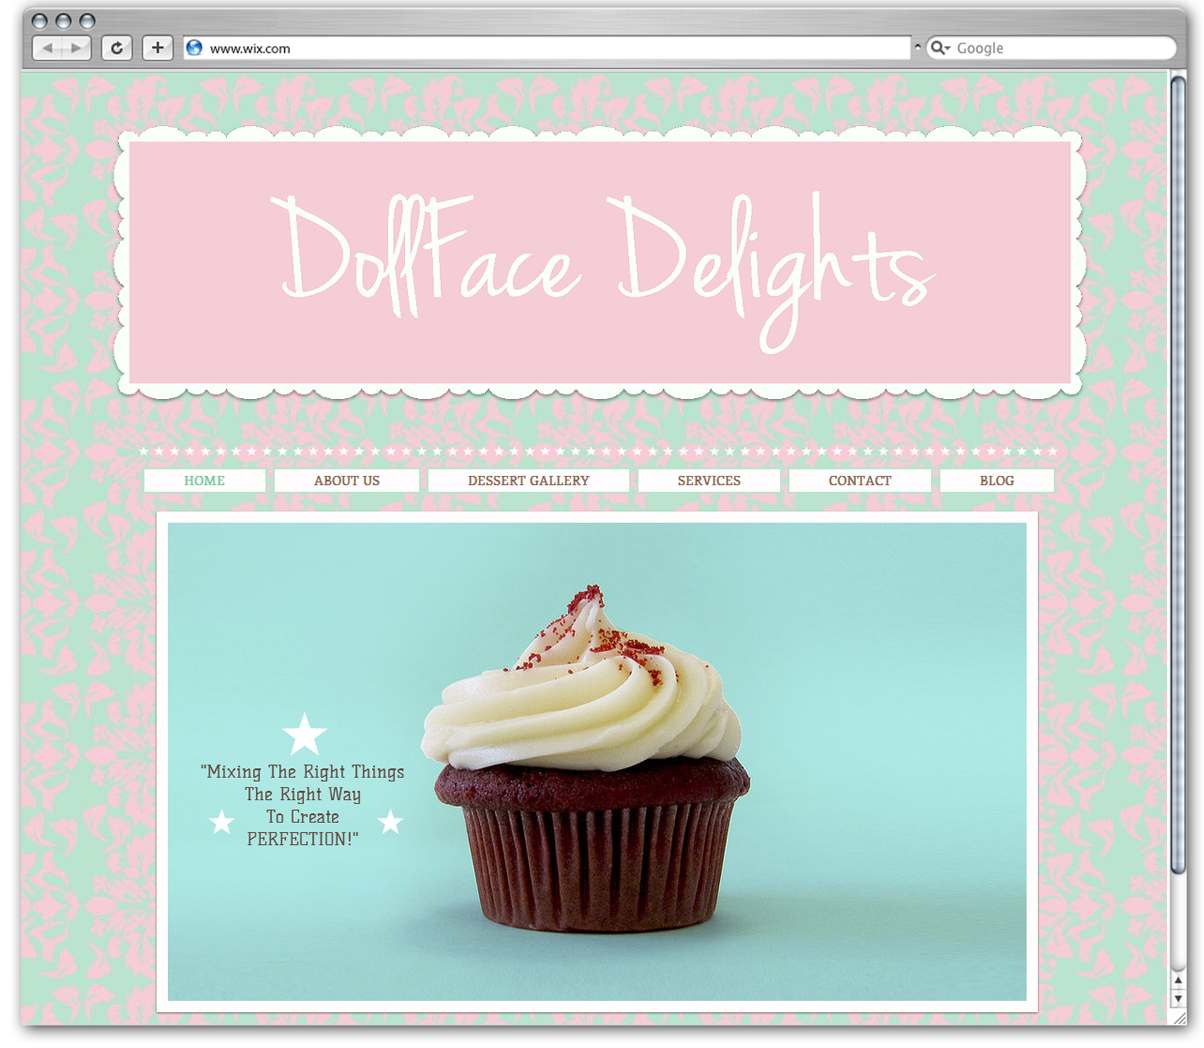 Dollface Delights